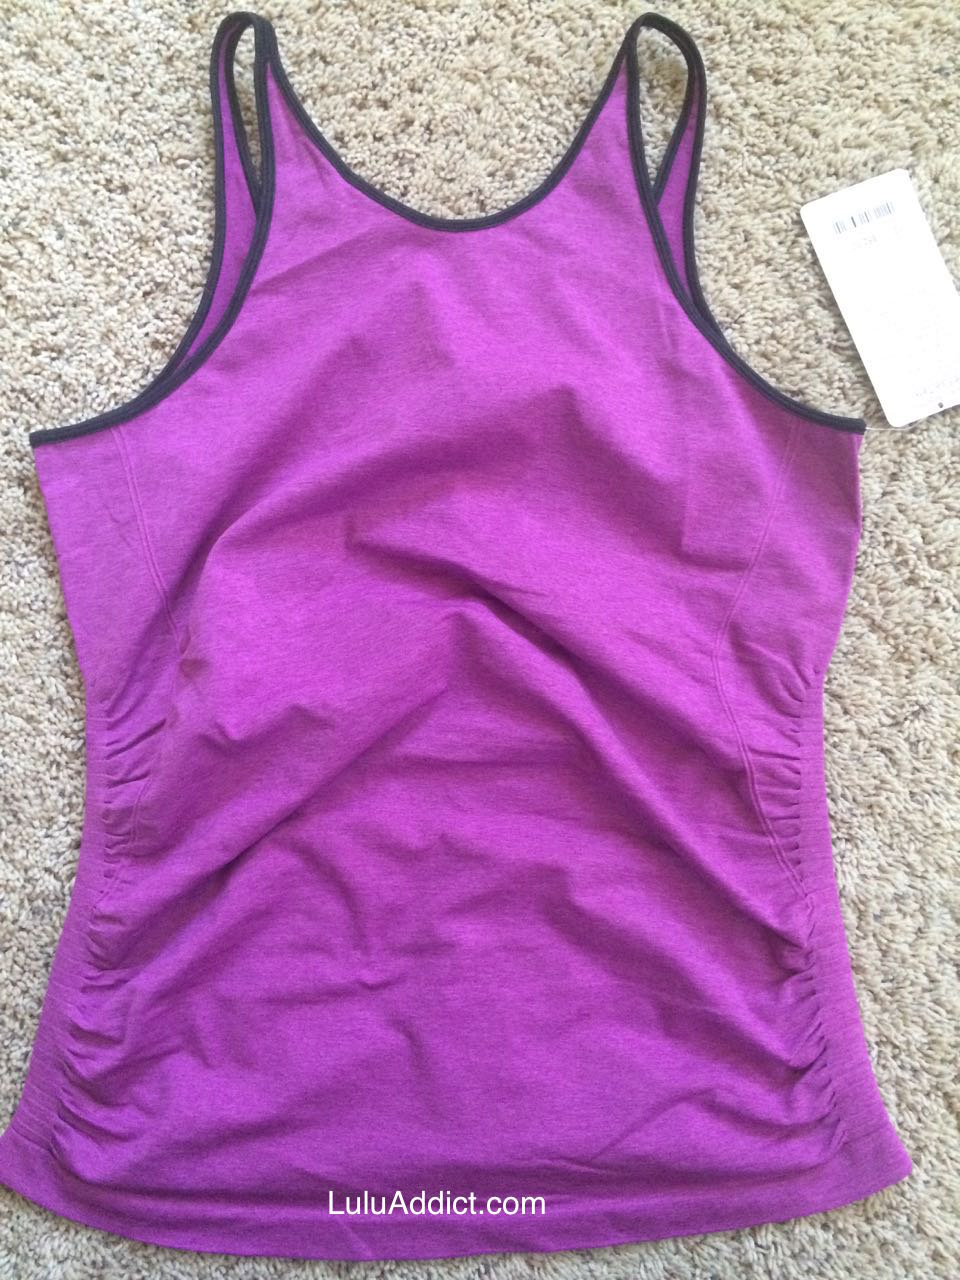 lululemon-in-the-flow-tank regal-plum